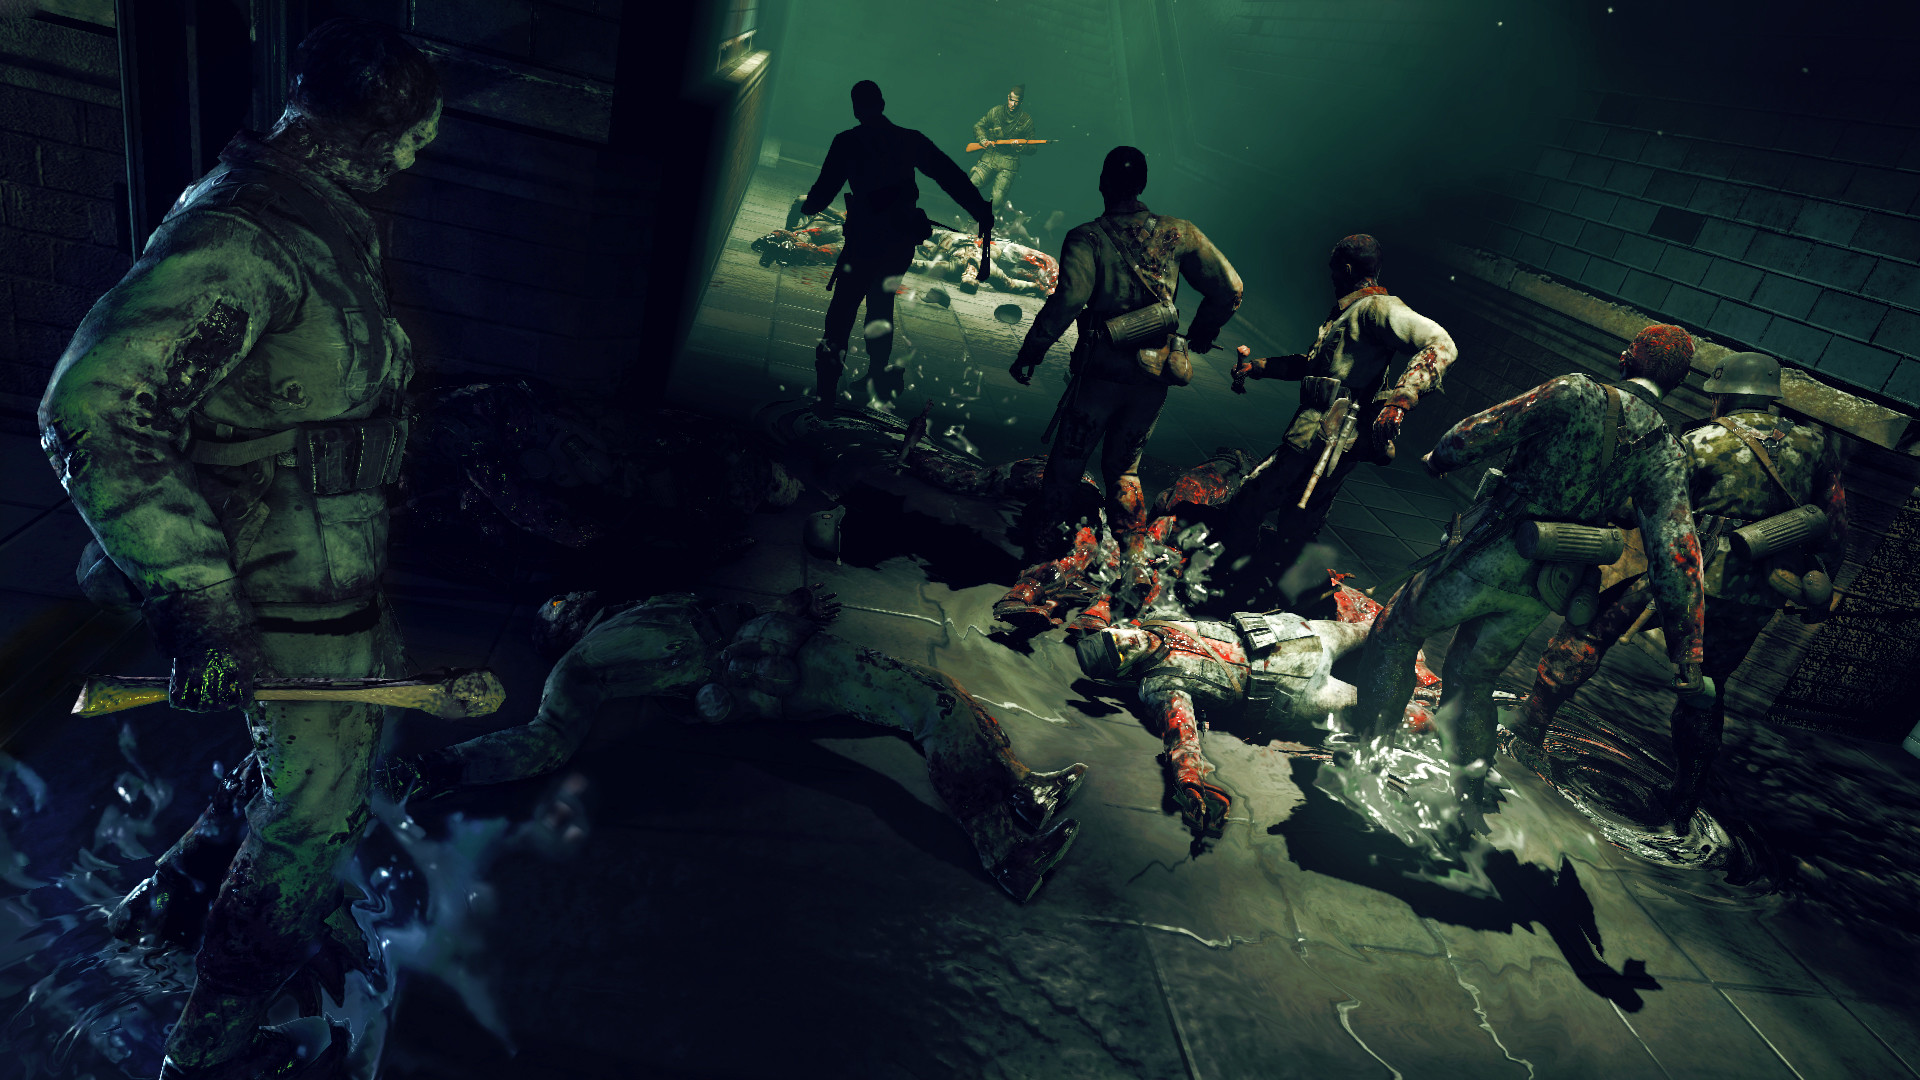 Zombie Army 4 Game Wallpapers Free Pictures On Greepx